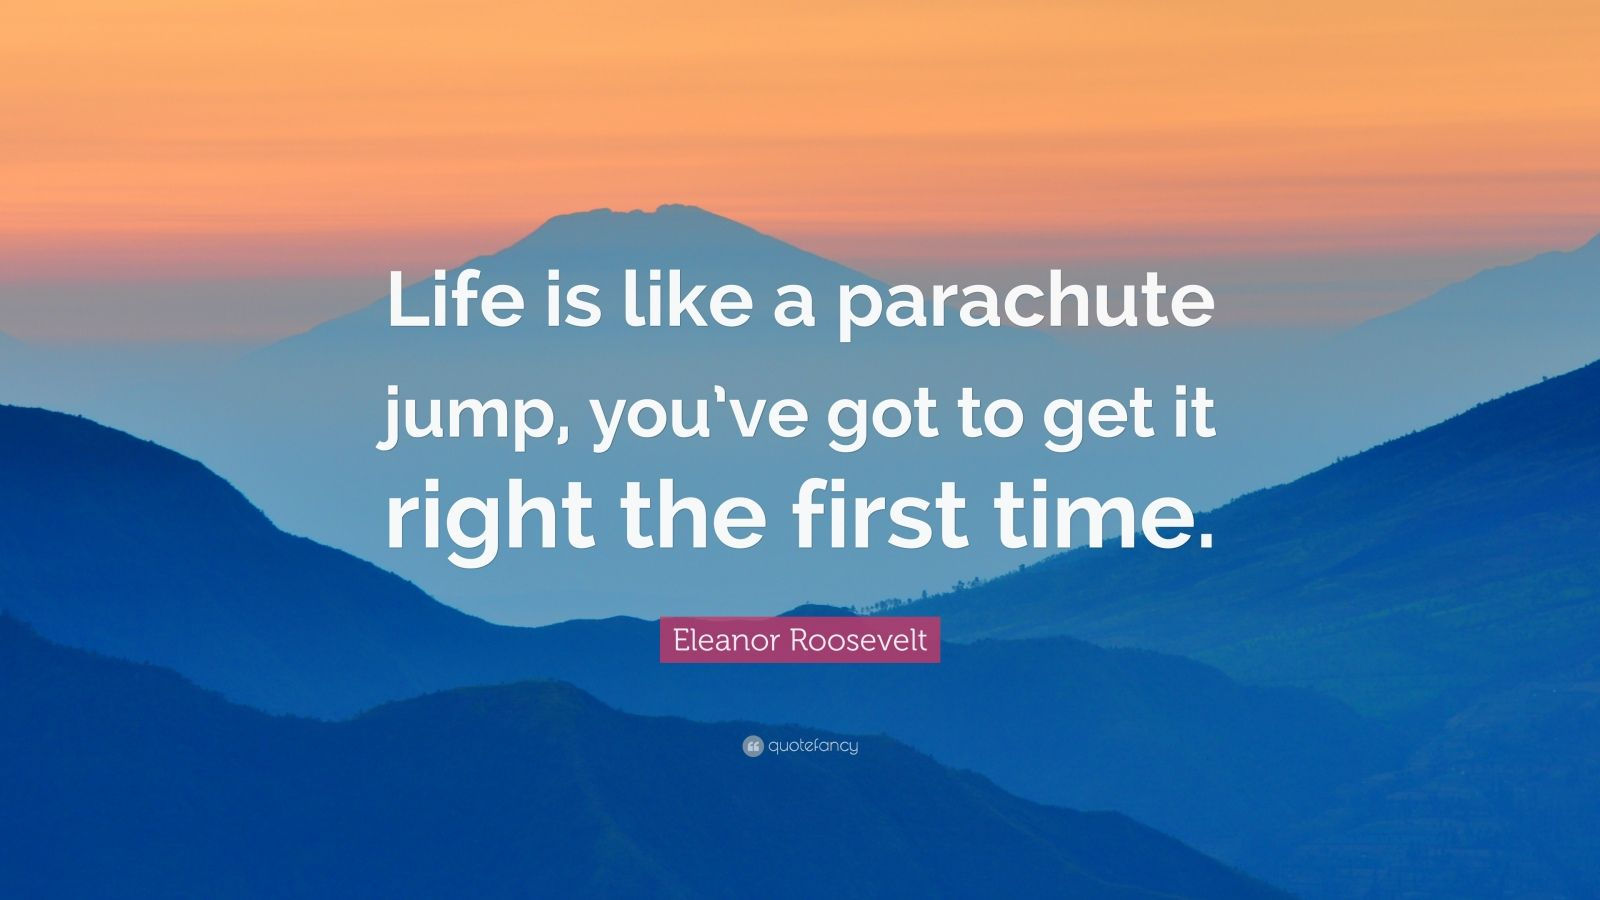 """Eleanor Roosevelt Quote: """"Life is like a parachute jump, you've got to get it right the first time."""""""